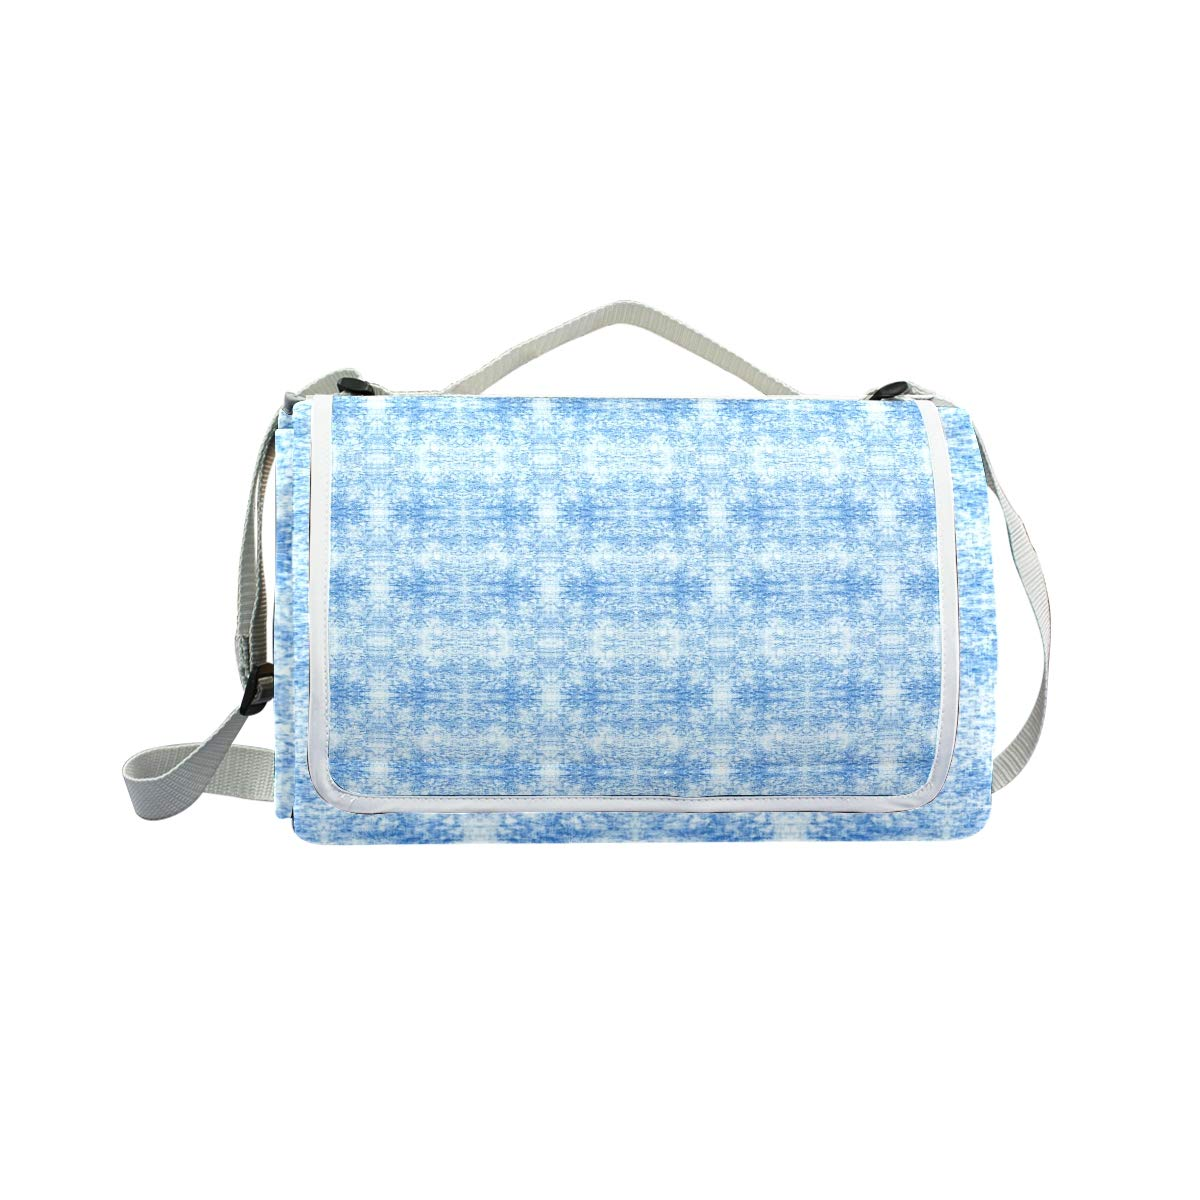 LOIGEIDQ Picnic mat Rchambray Light Waterproof Outdoor Picnic Blanket, Sandproof and Waterproof Picnic Blanket Tote for Camping Hiking Grass Travelling DualLayers by LOIGEIDQ (Image #3)